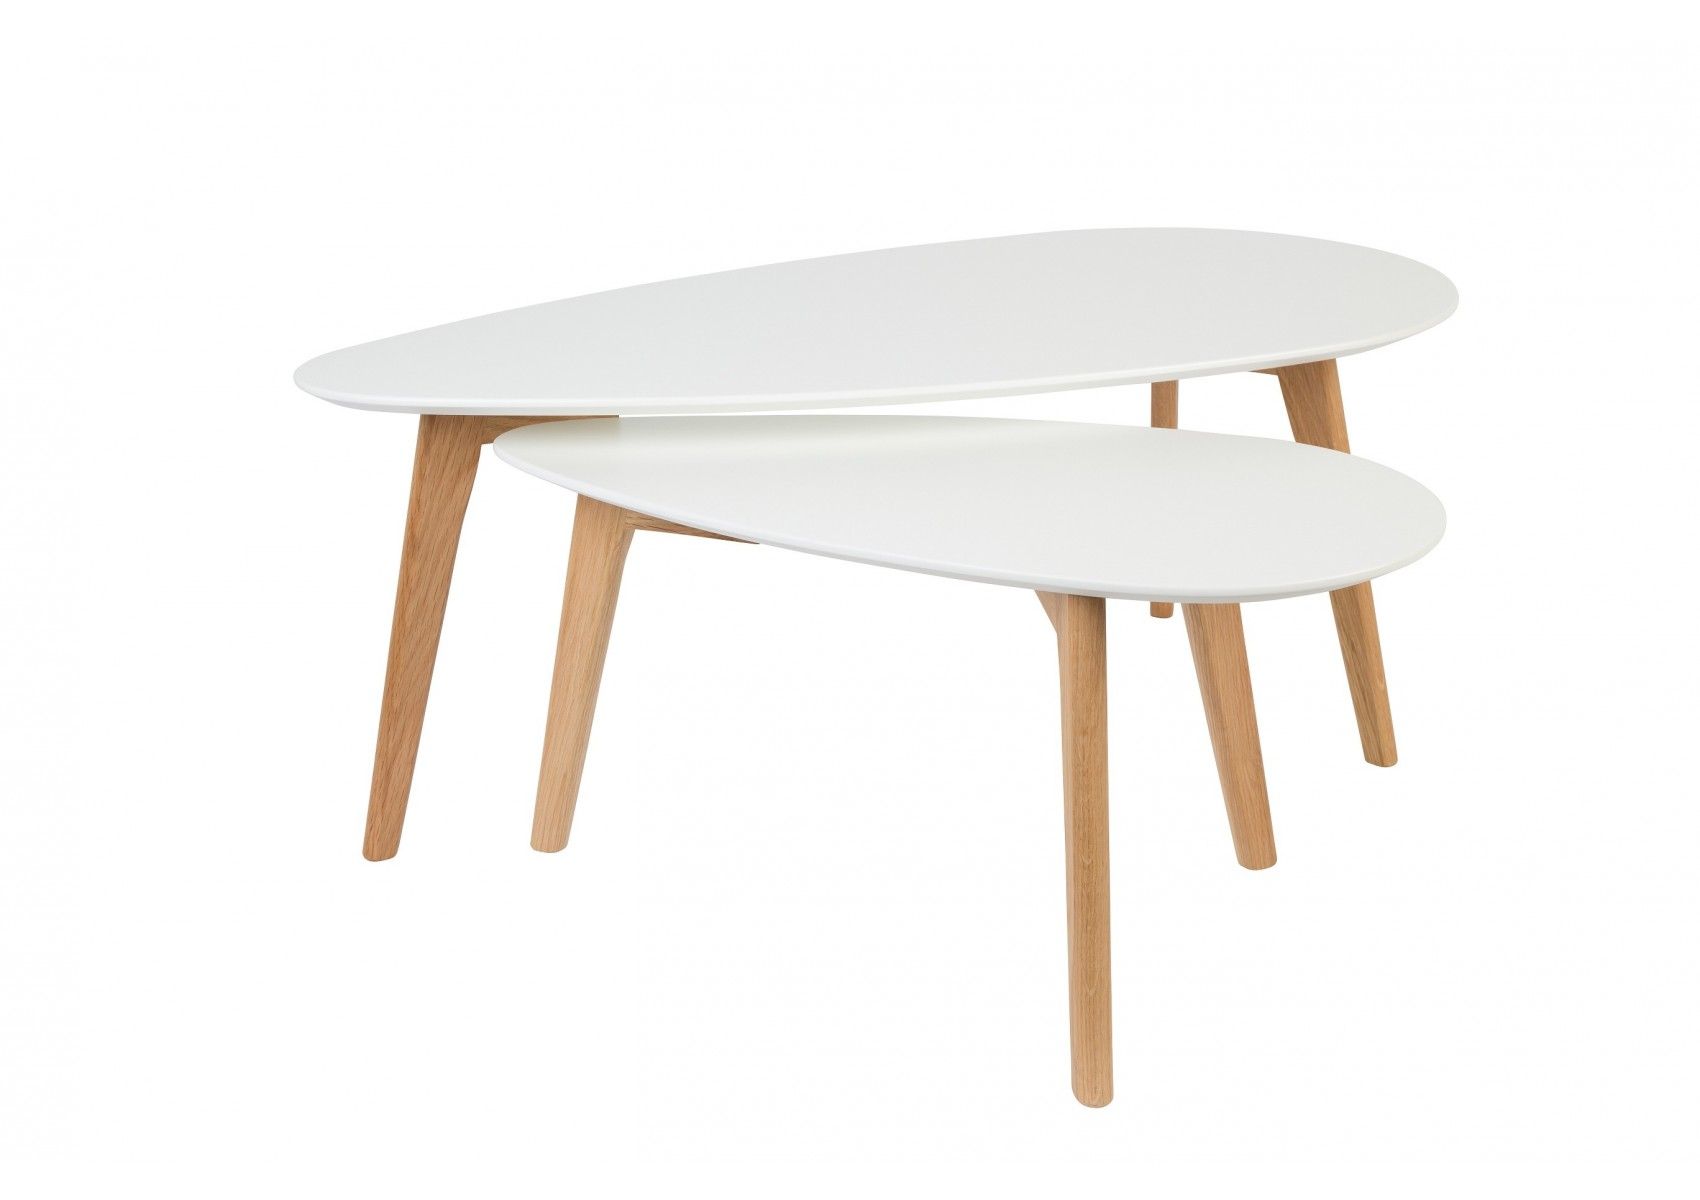 Table Basse Scandinave Blanche Tables Basse Scandinave Drop Laquée Blanche